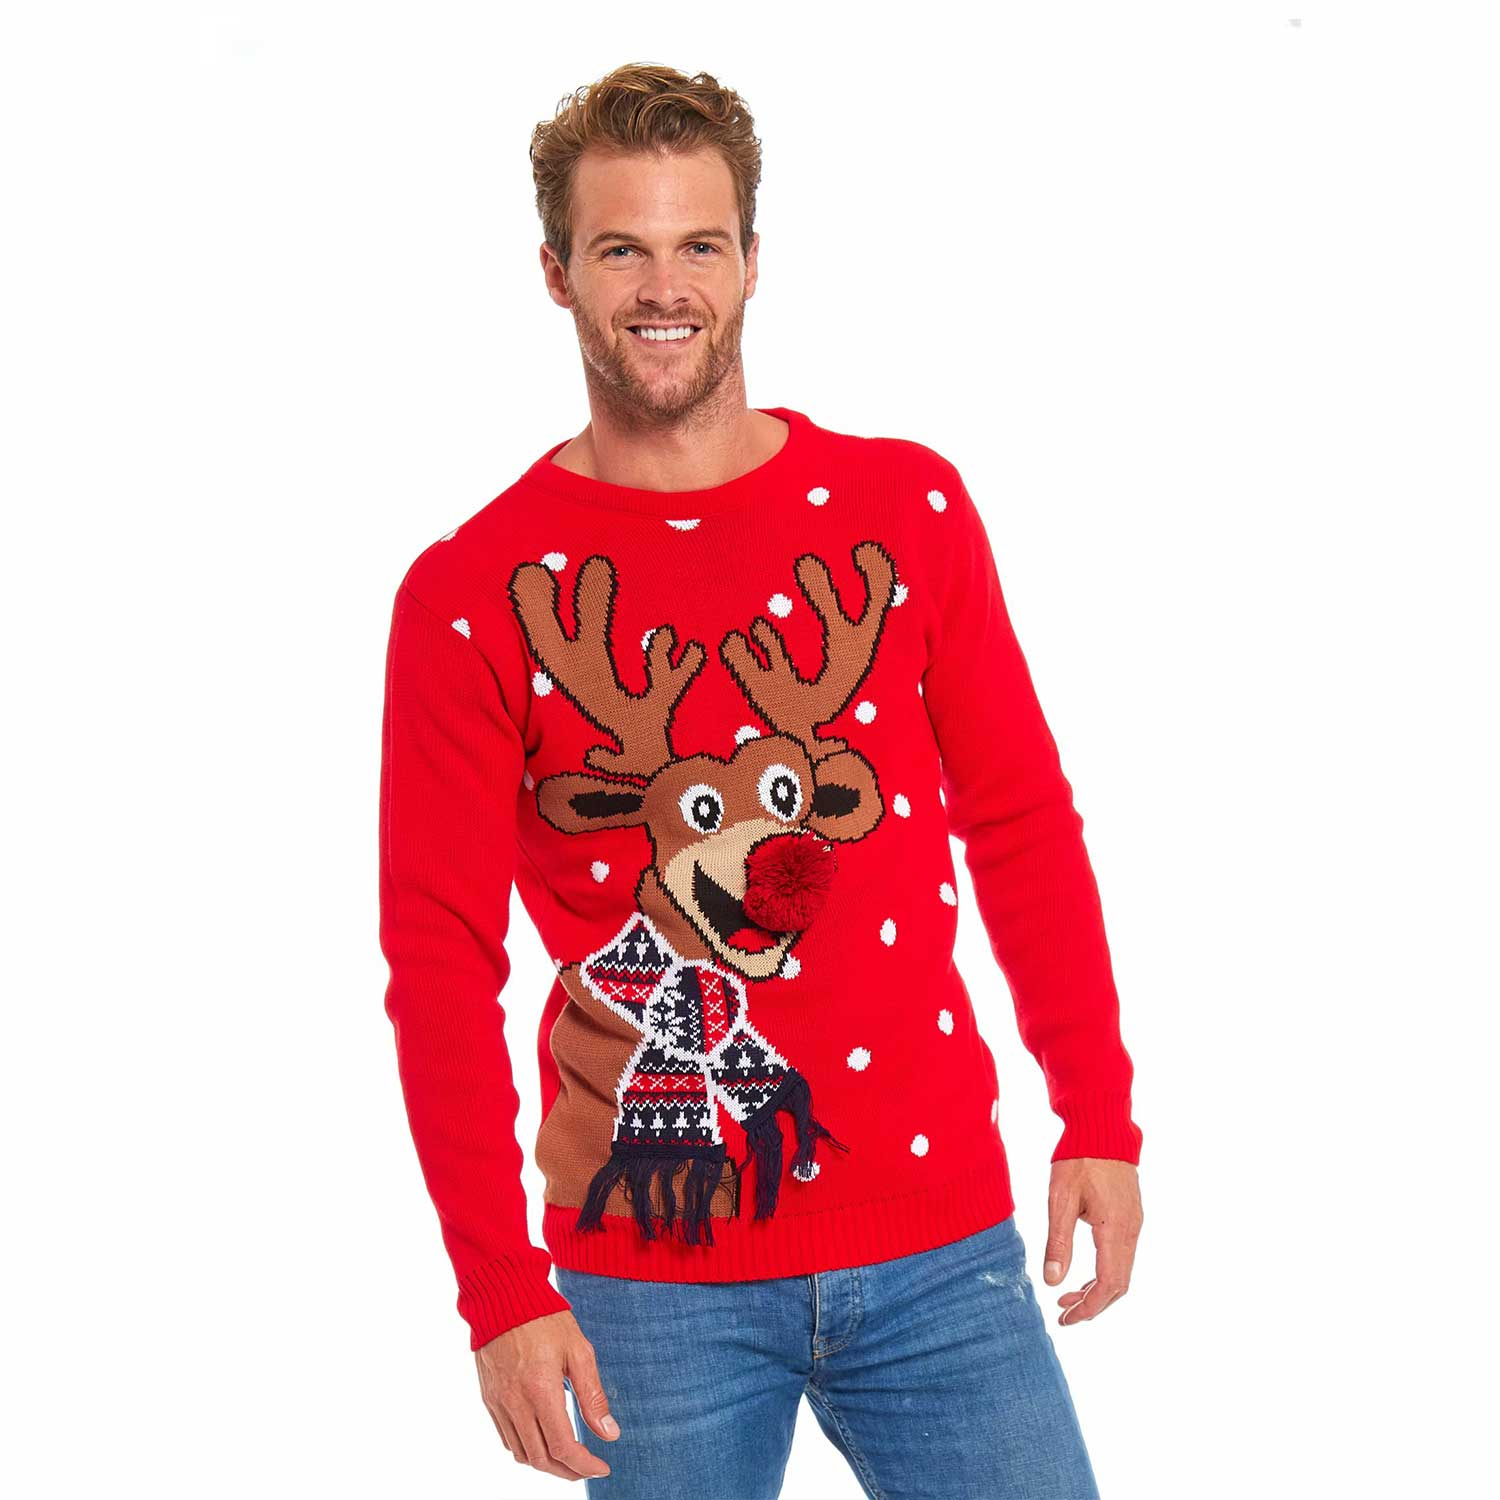 77badfb07fe7c Men's Funny Christmas Sweater with Reindeer Pom Pom Nose